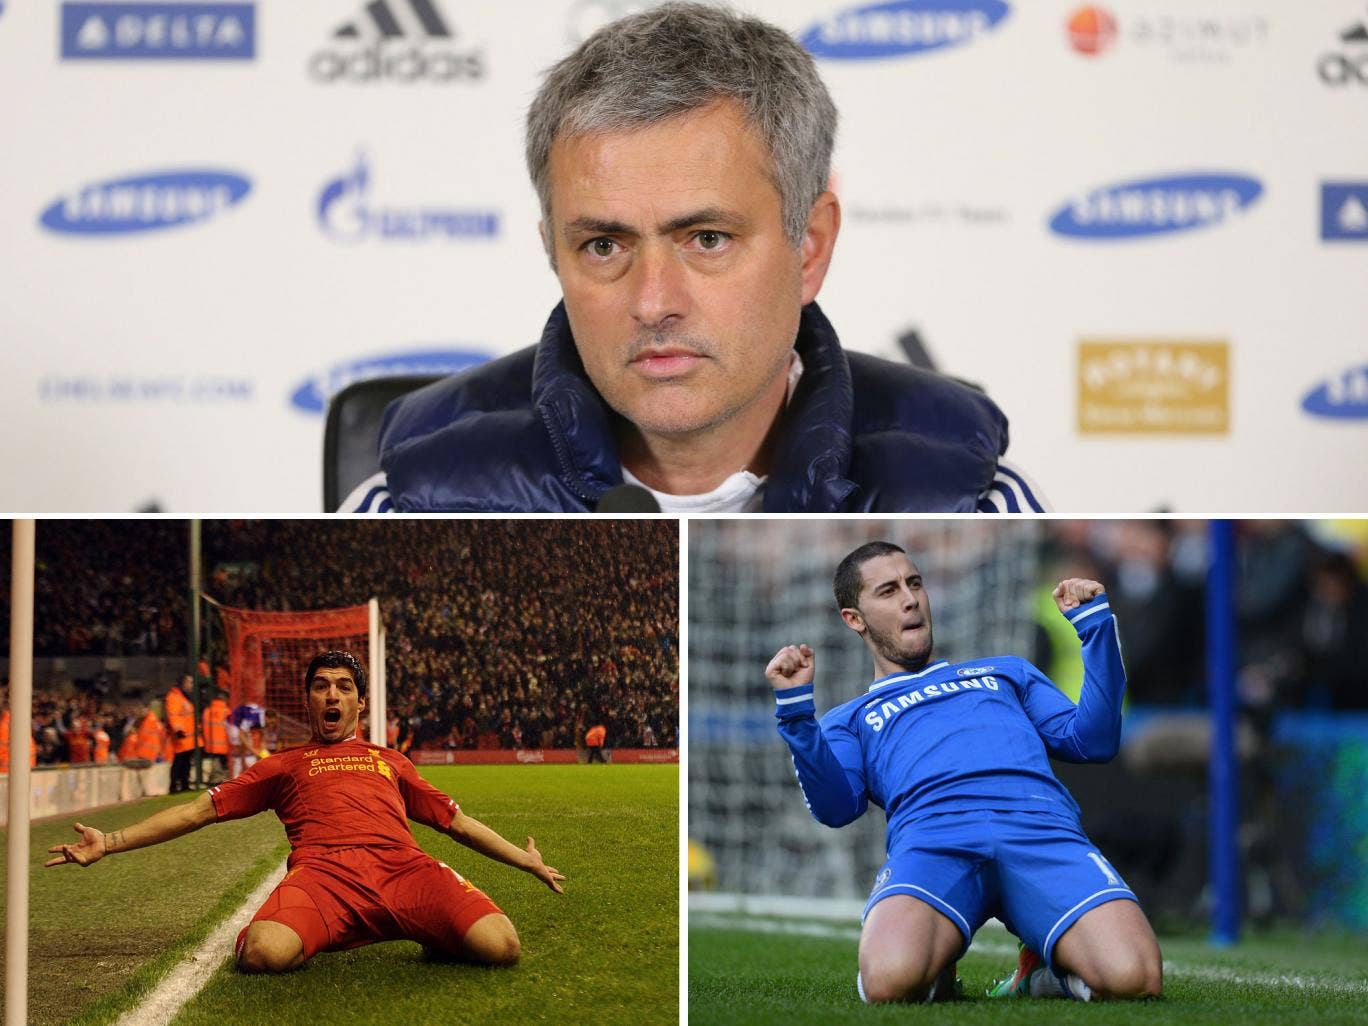 Jose Mourinho believes the player of the year awards should go to those who win the league, with Luis Suarez and Eden Hazard in the running for this year's award